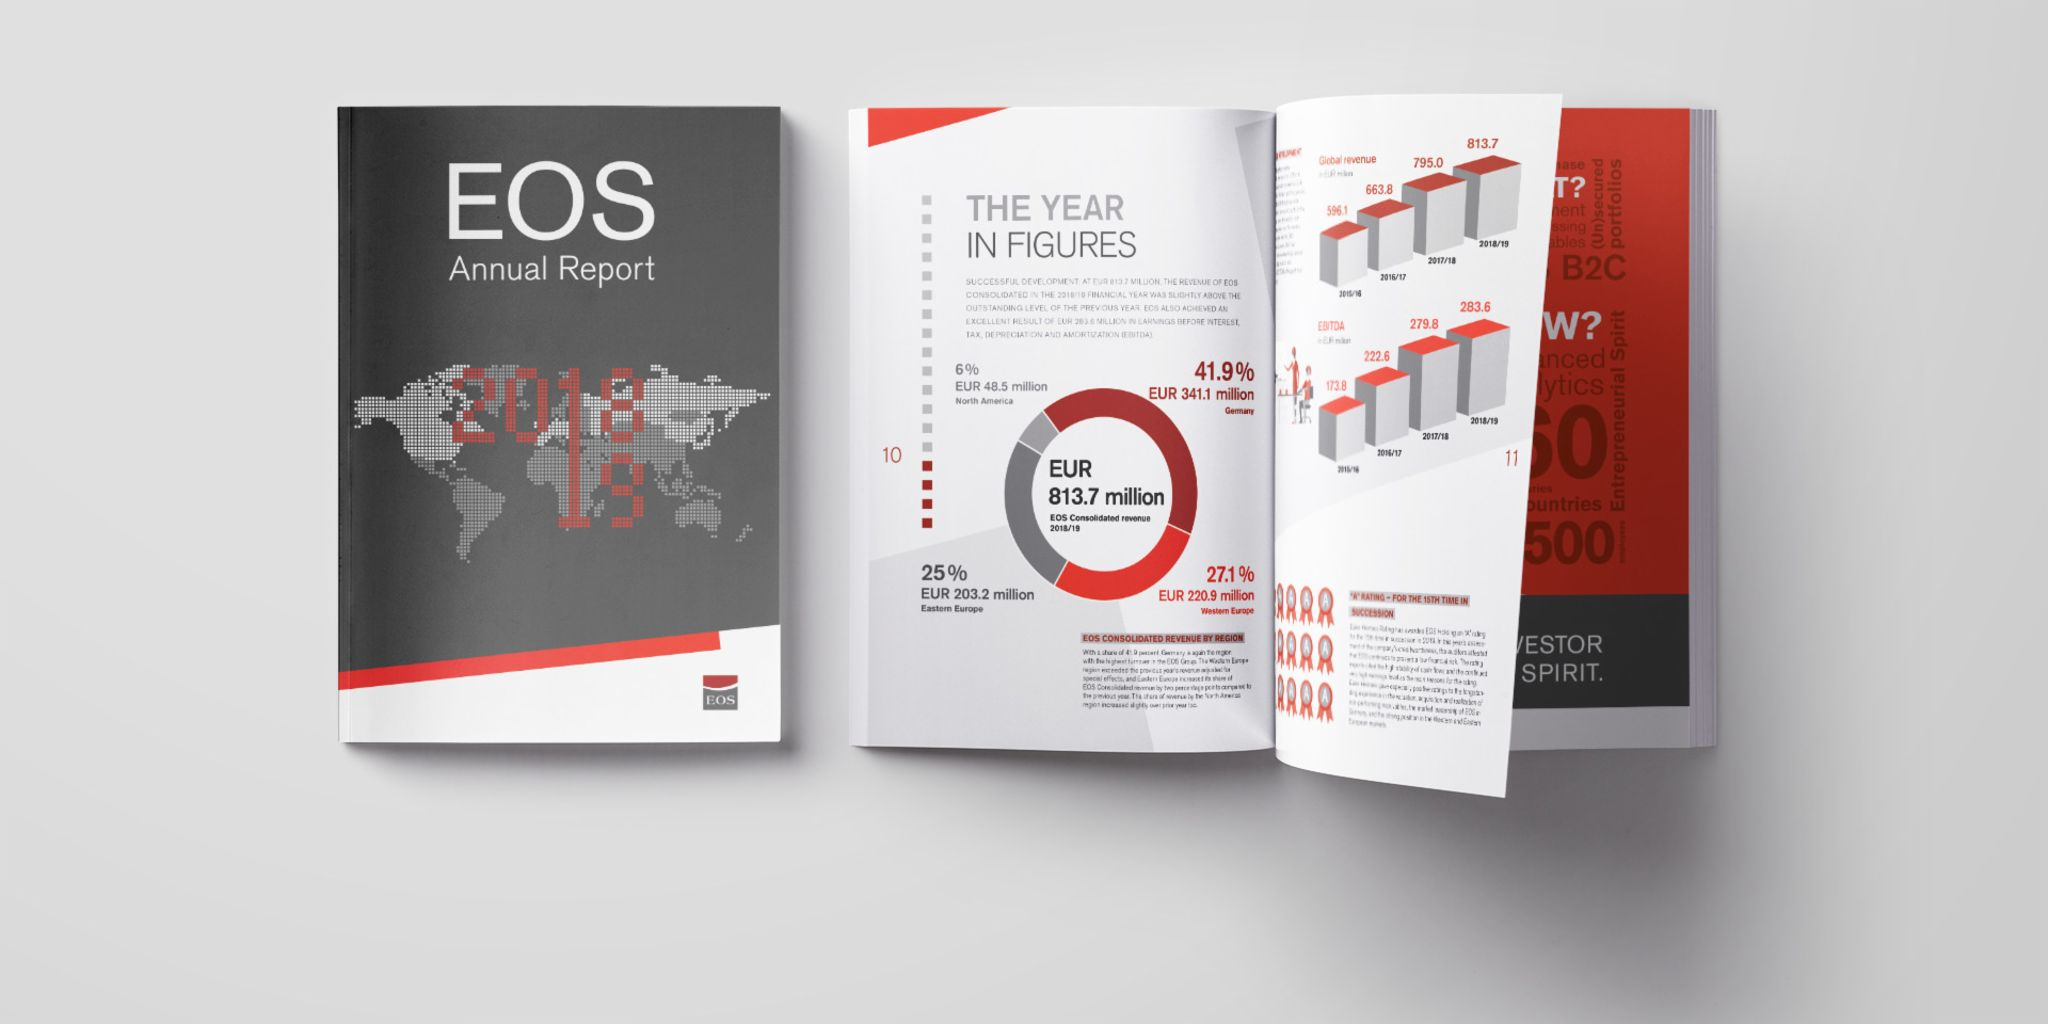 The EOS Annual Report 2018/2019